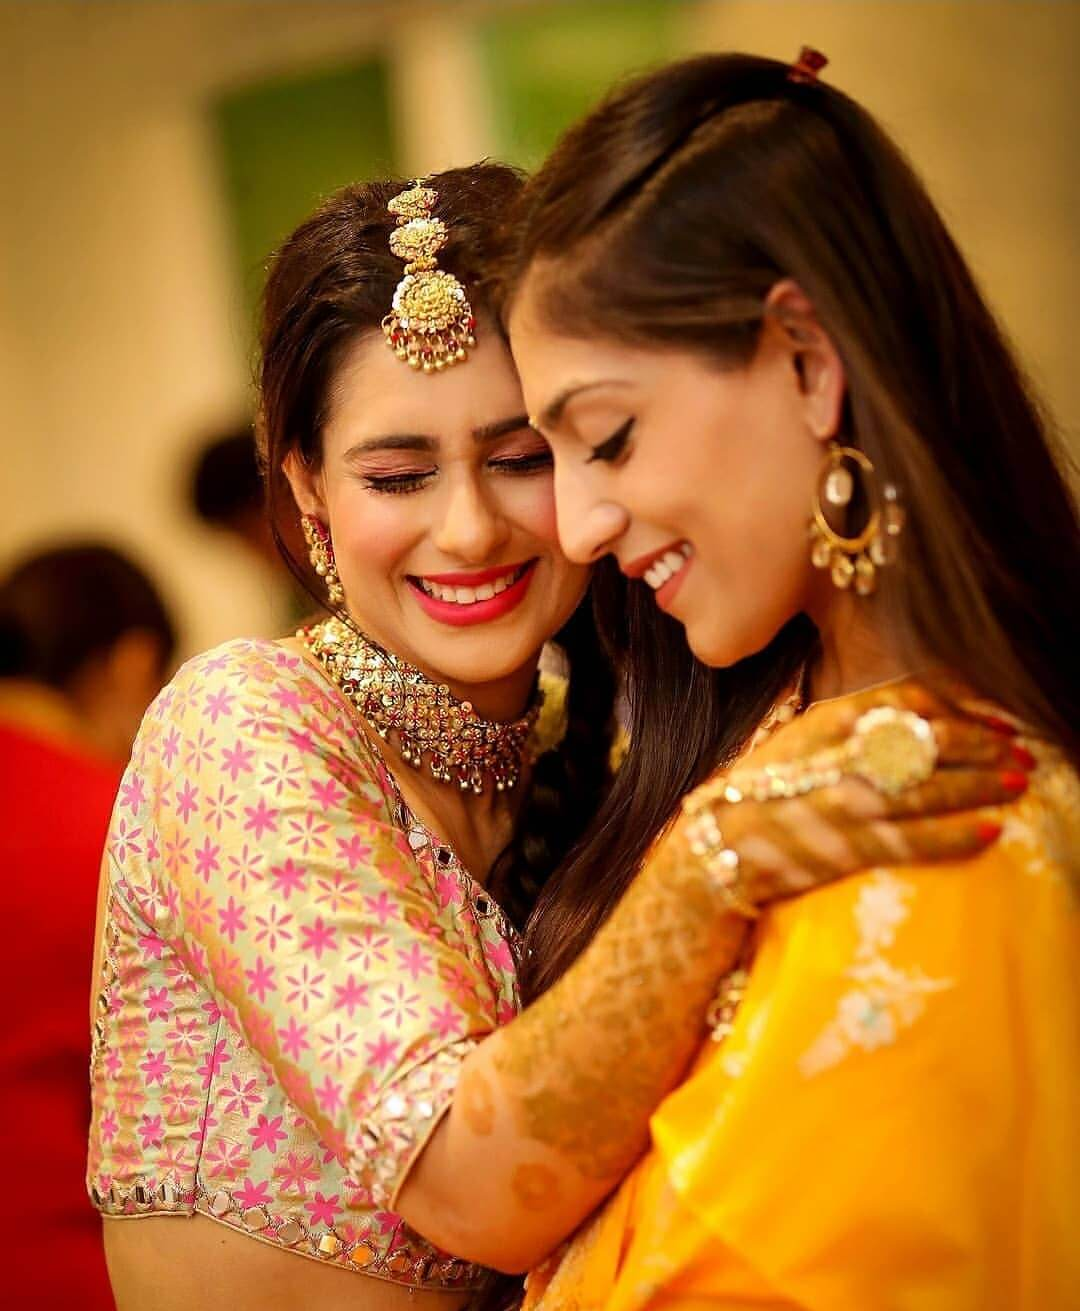 Top 13 Cute And Funny Thoughts That Every Bride's Sister Has!